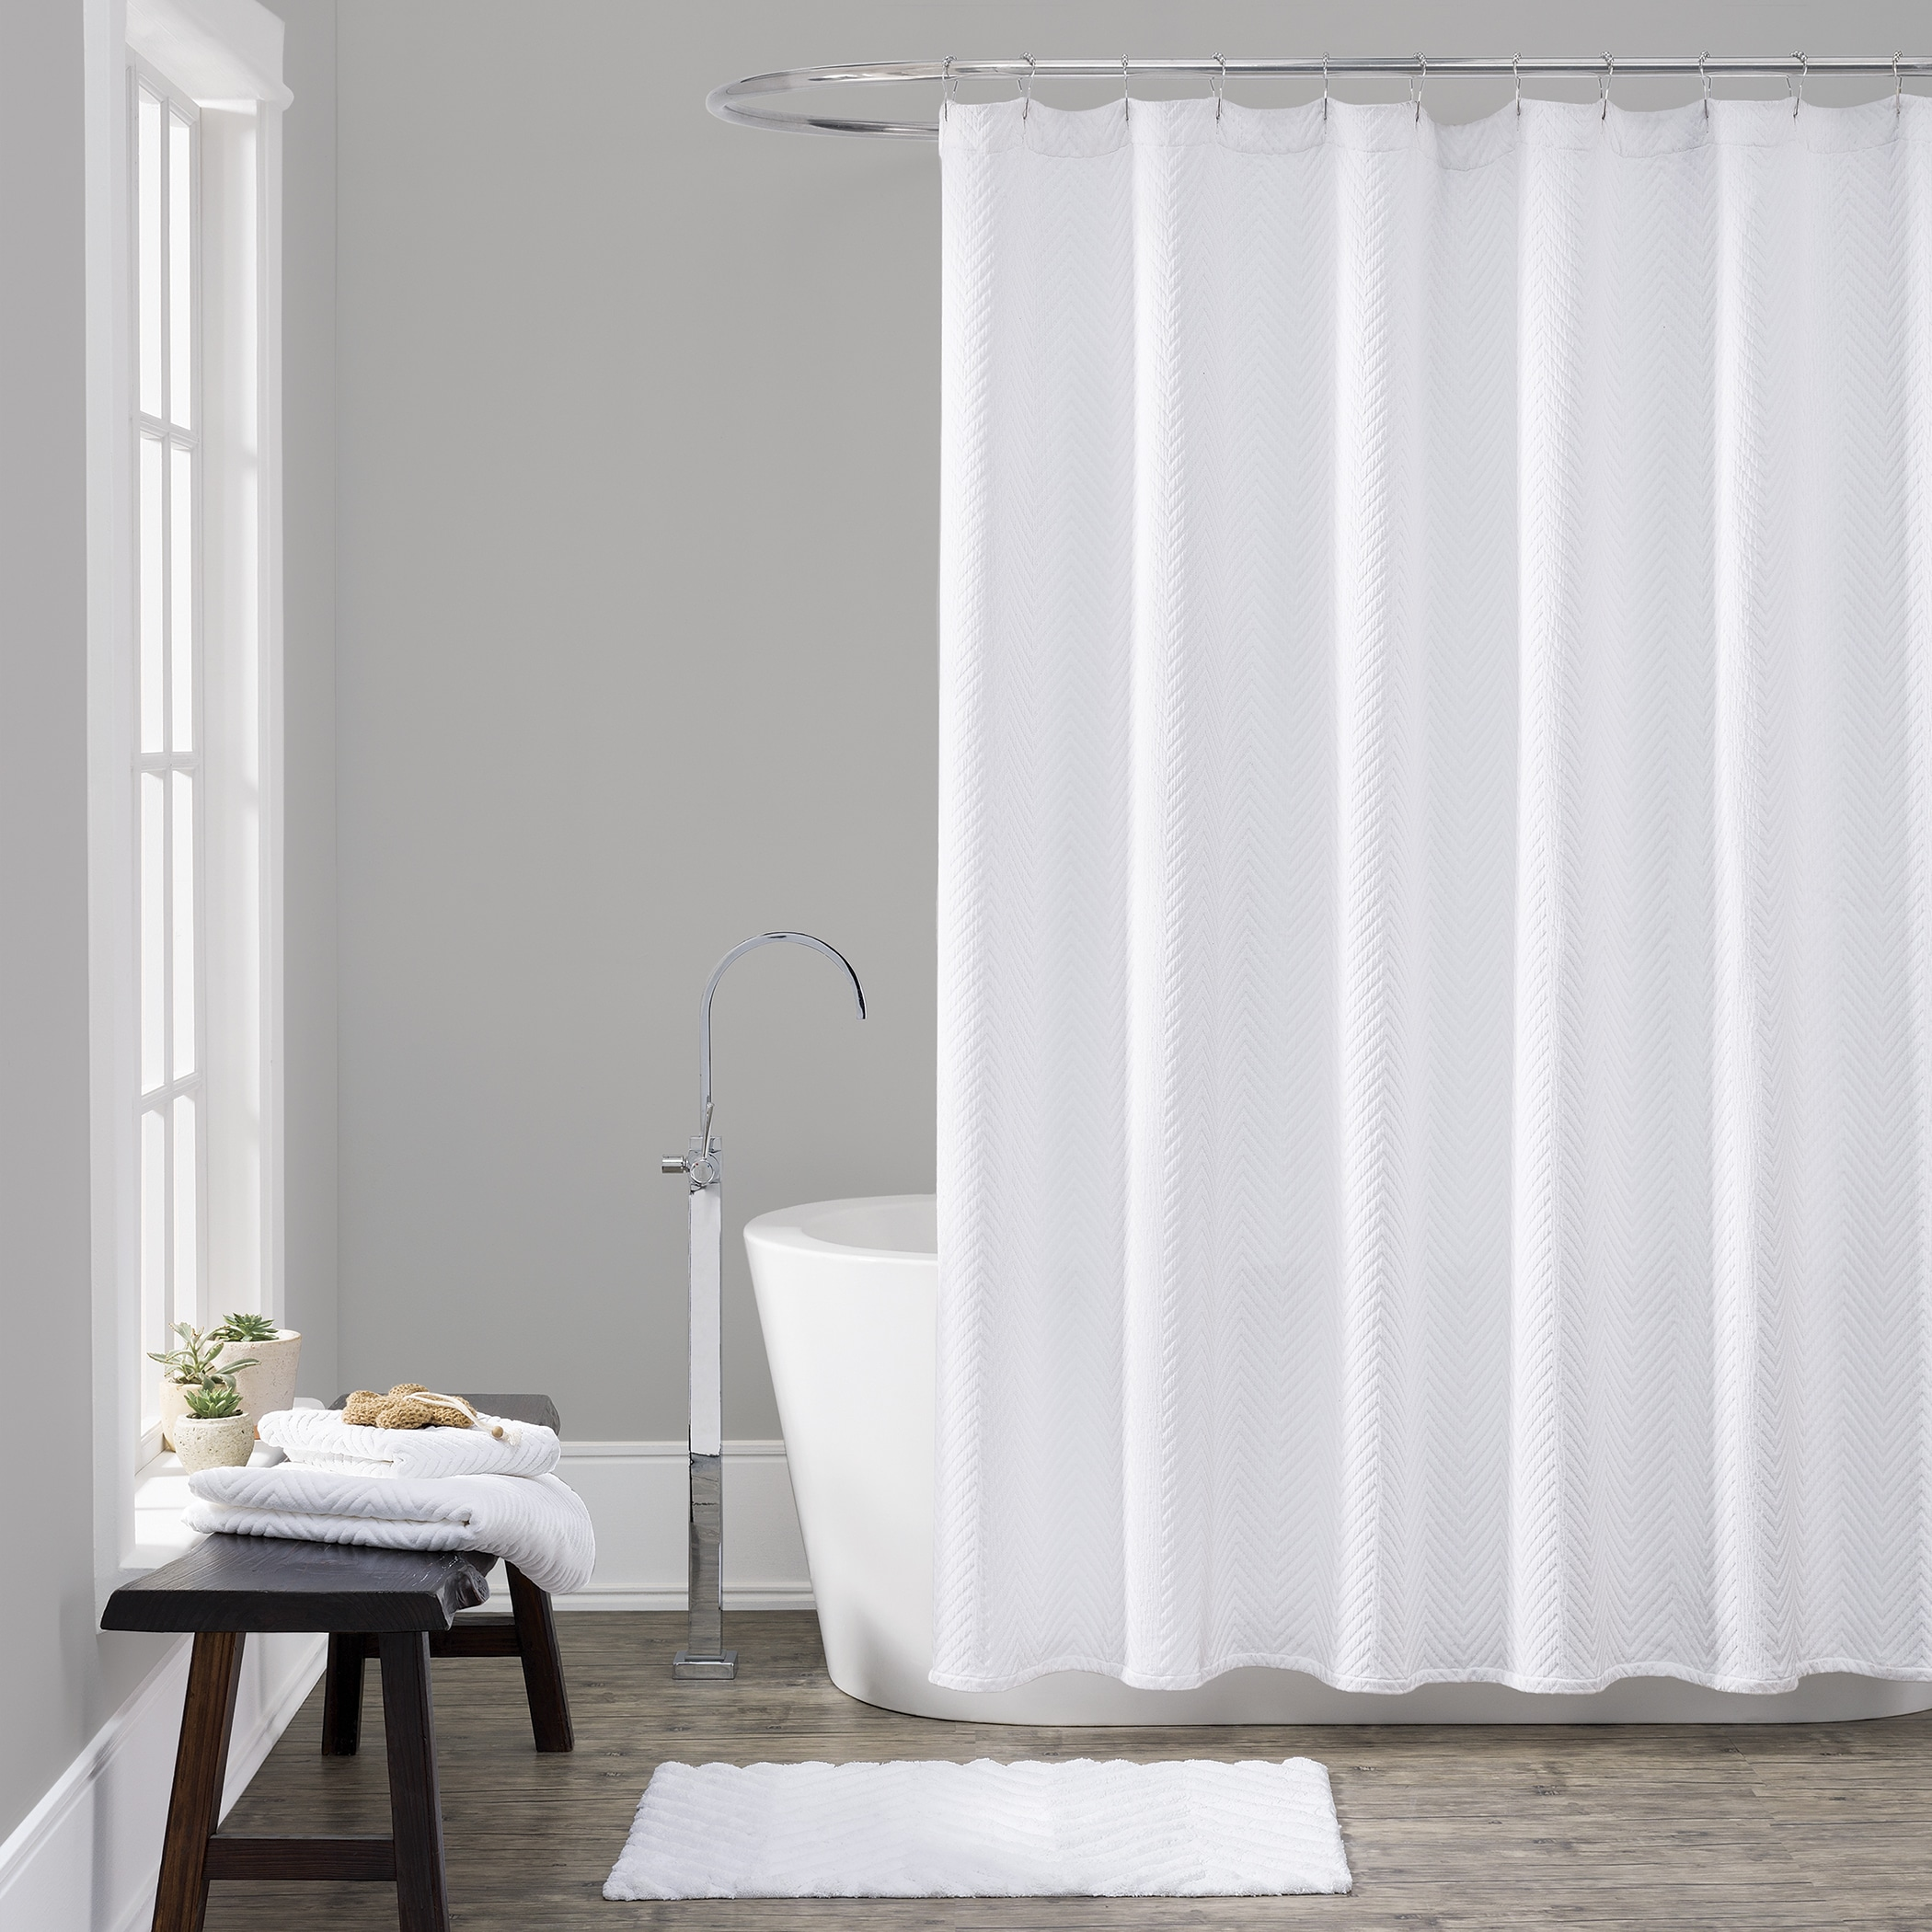 of hypermallapartments w shower unique curtains by francis curtain farmhouse luxury wfrancis